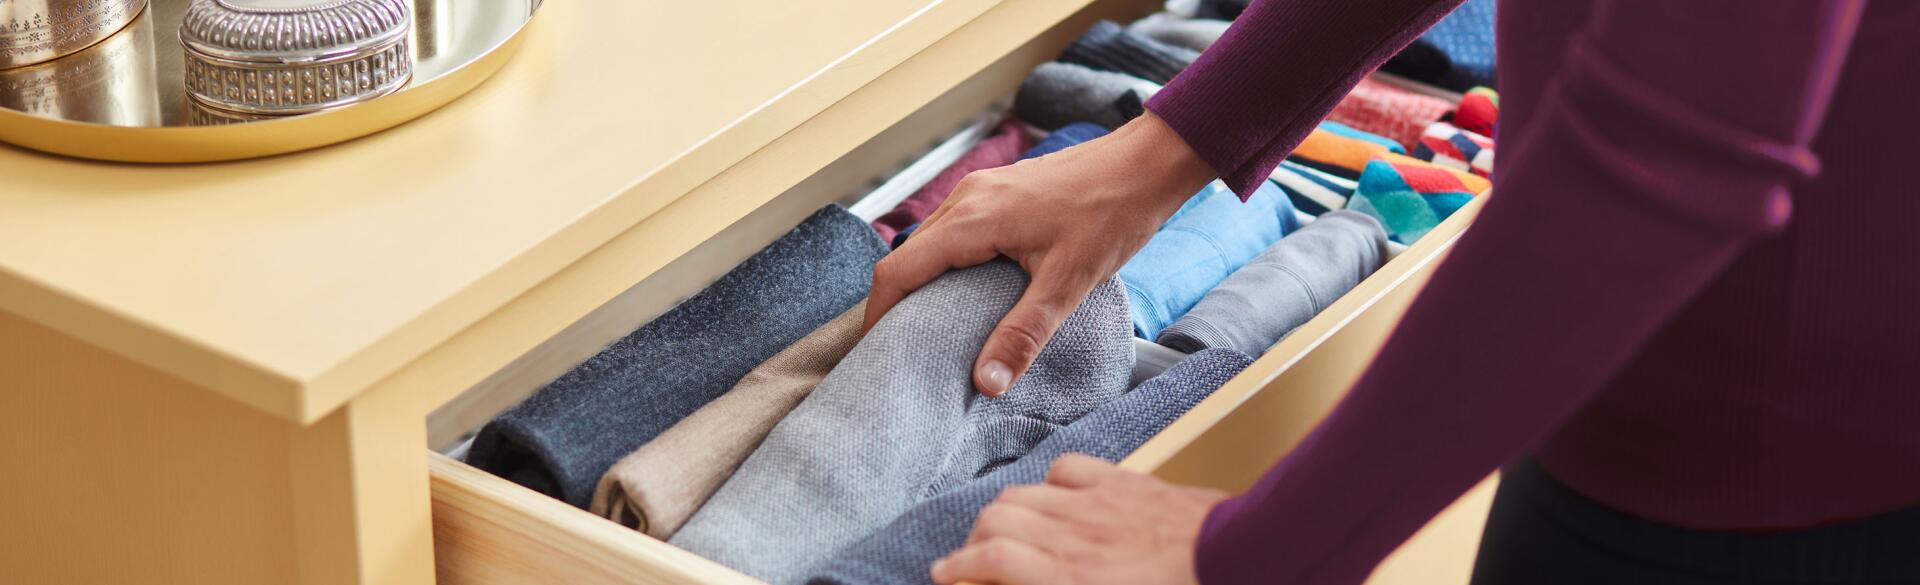 Woman organizing clothes in a dresser drawer